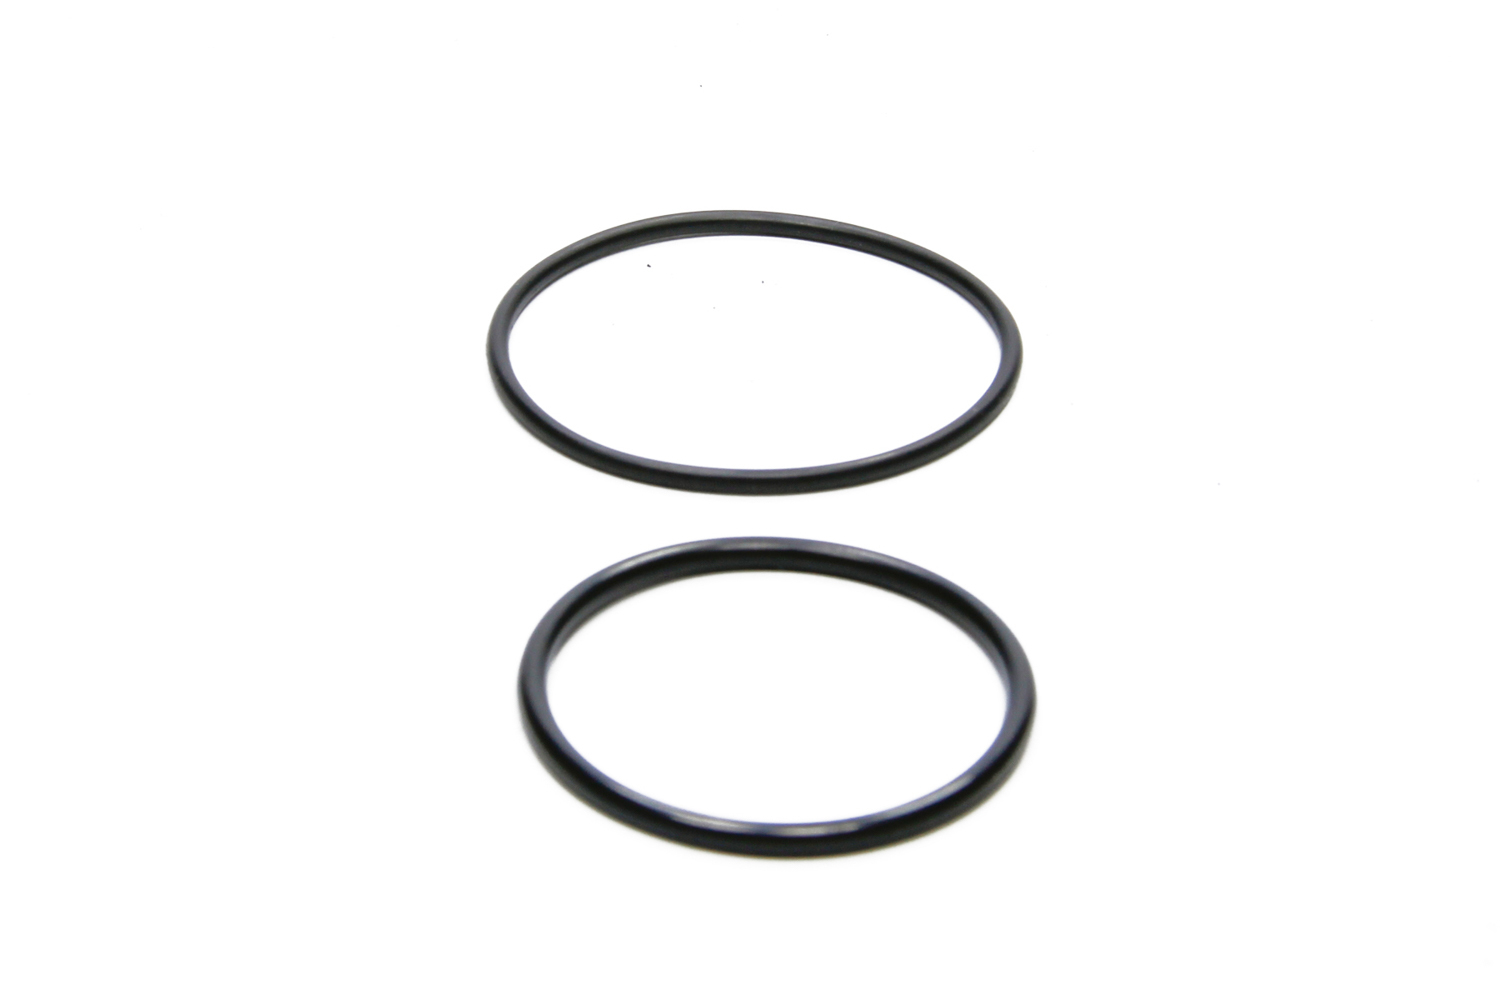 King Racing Products 4326 O-Ring, 6 and 12 AN, Rubber, King Racing Products Fuel Filter, Kit